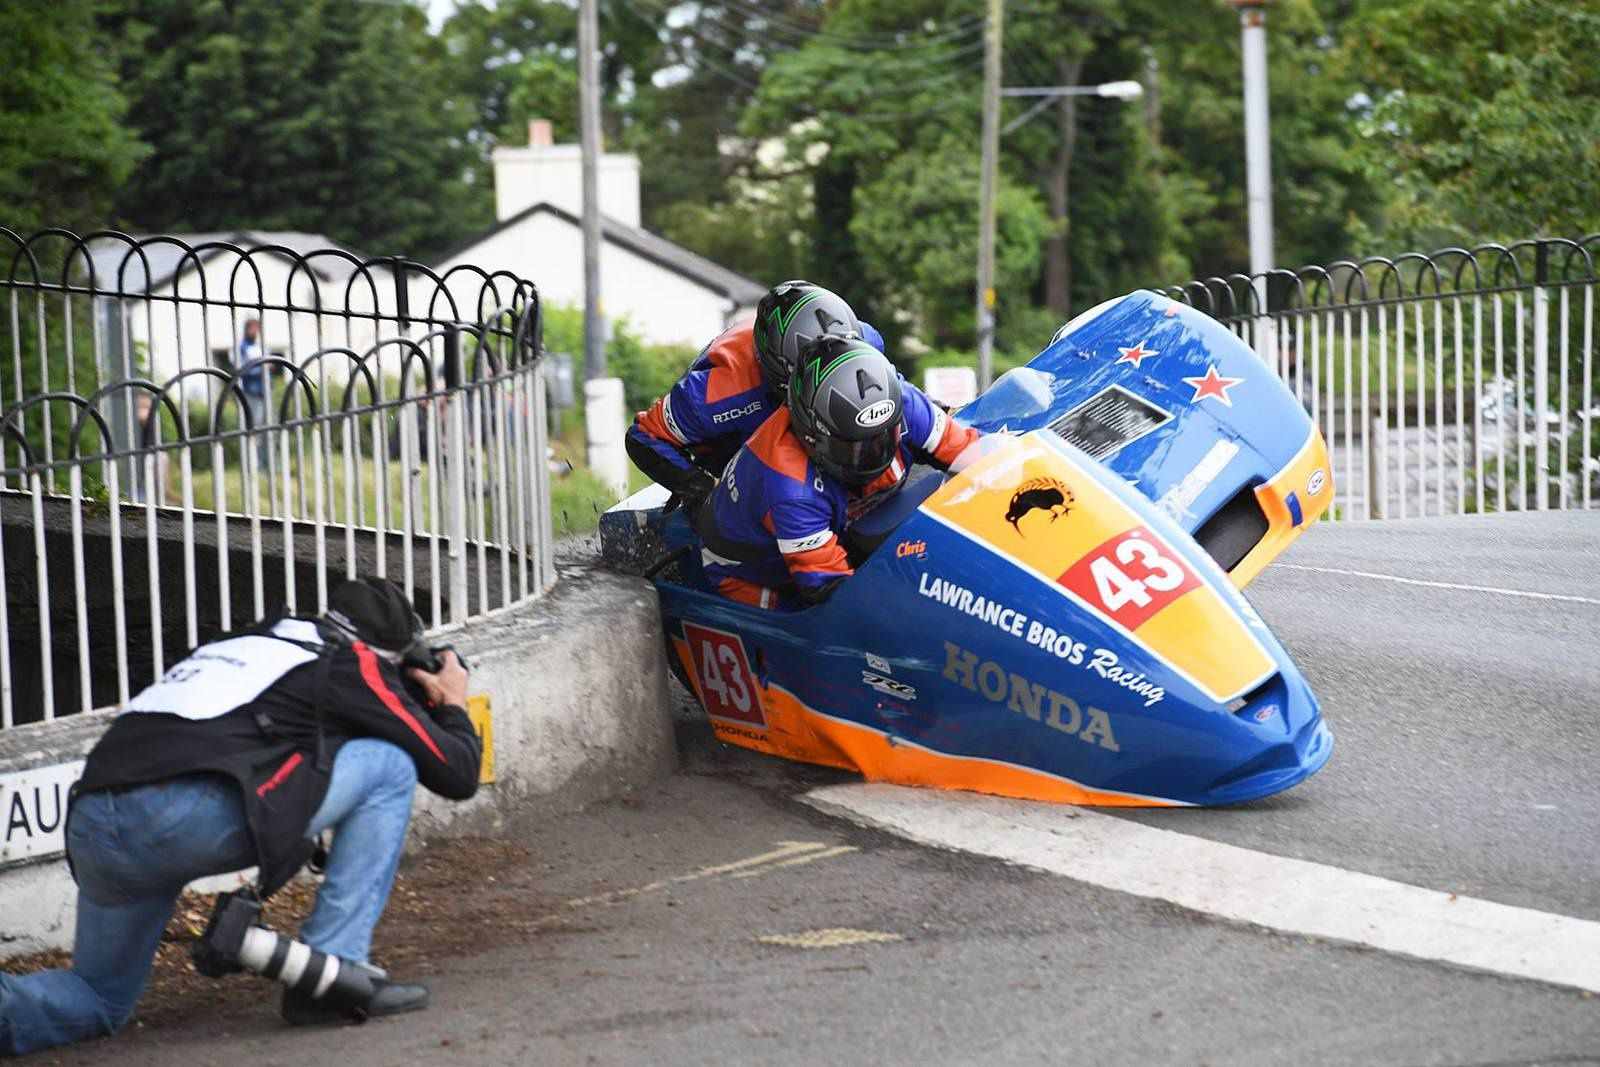 Richard Lawrance et Chris Lawrance en facheuse posture ©Isle of Man Race Photography